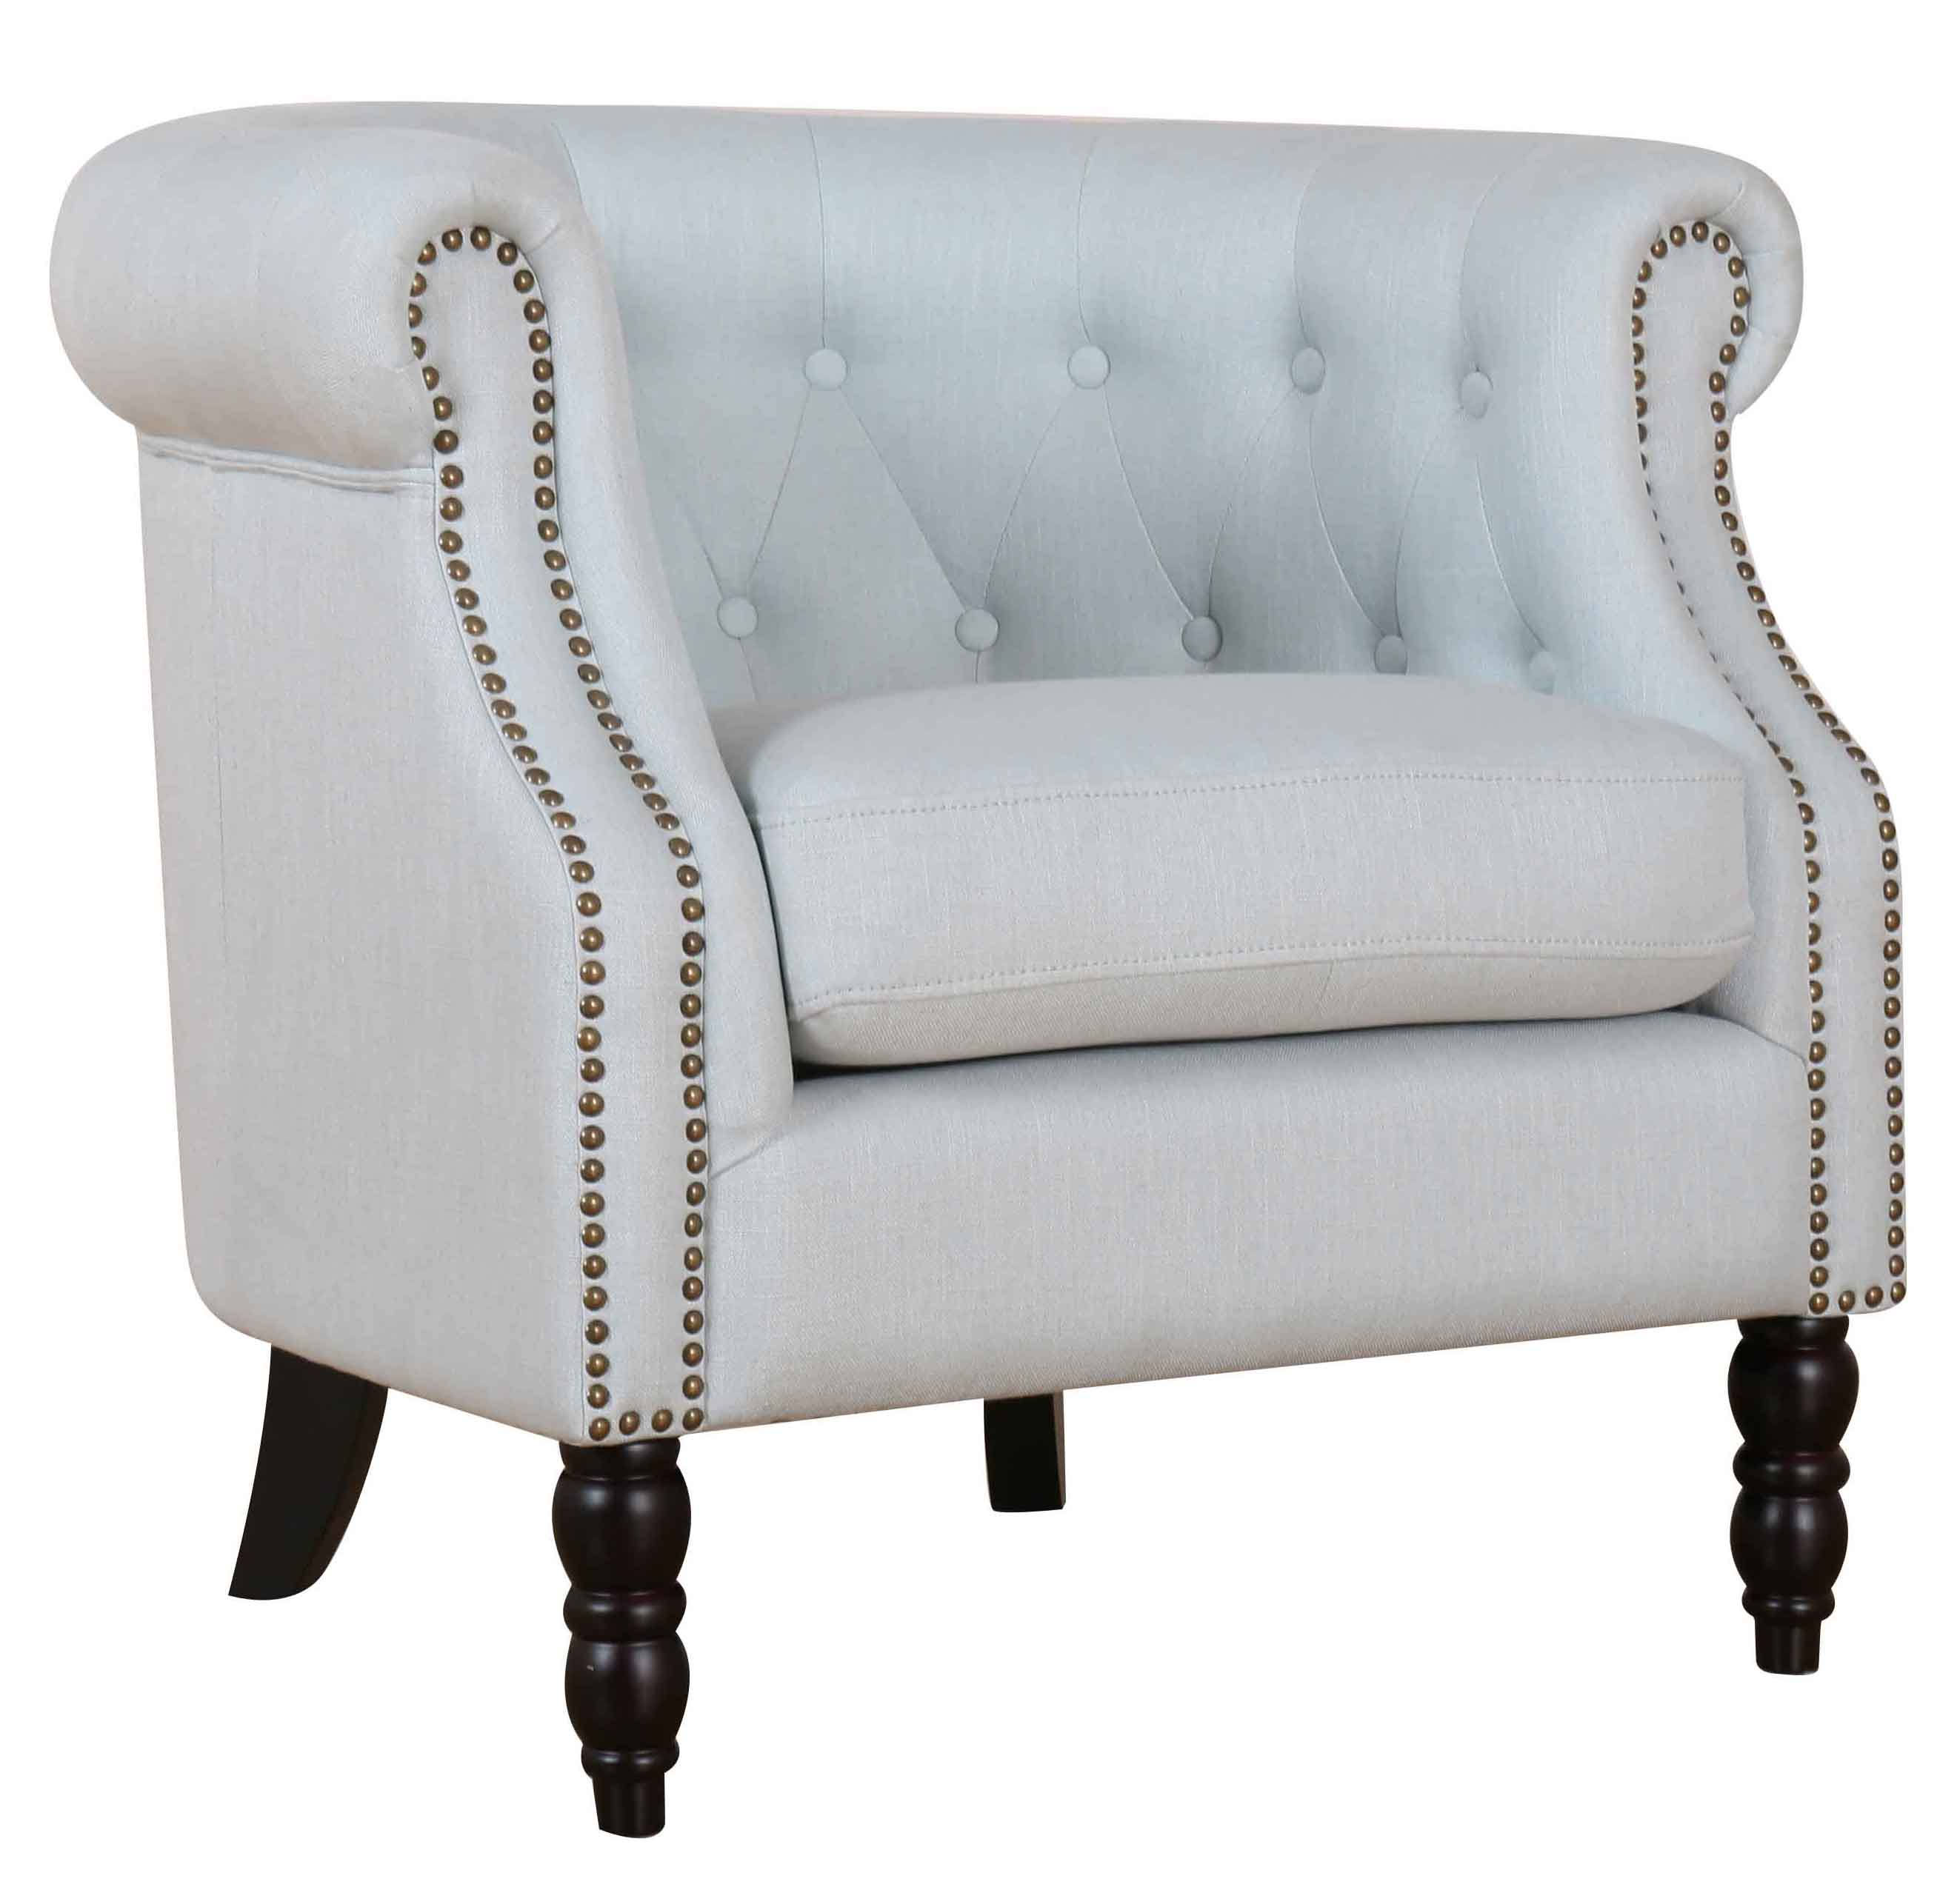 Cosette Chairandrew Martin Origin In Armchairs For Cosette Leather Sofa Chairs (Image 12 of 25)